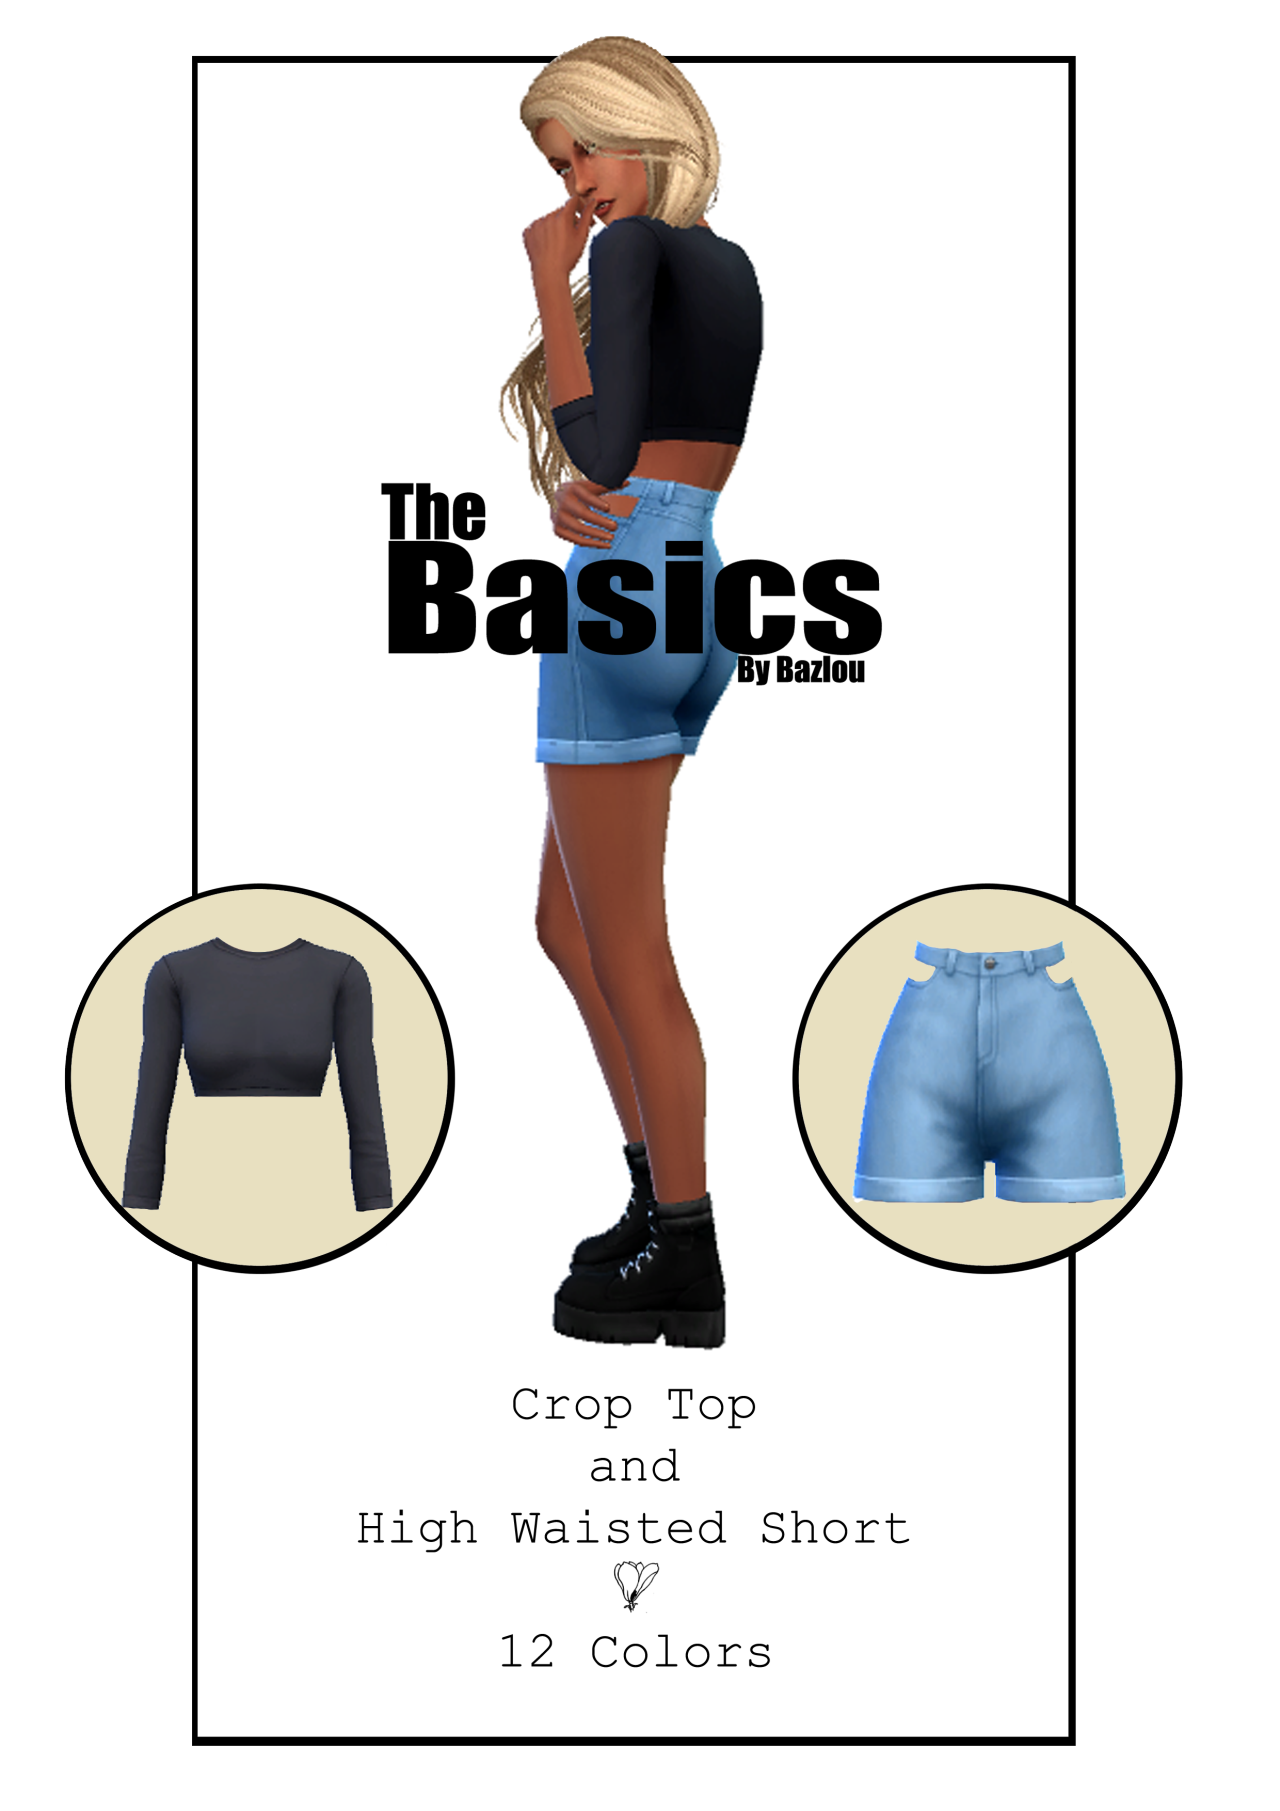 The Basics Collection by Bazlou